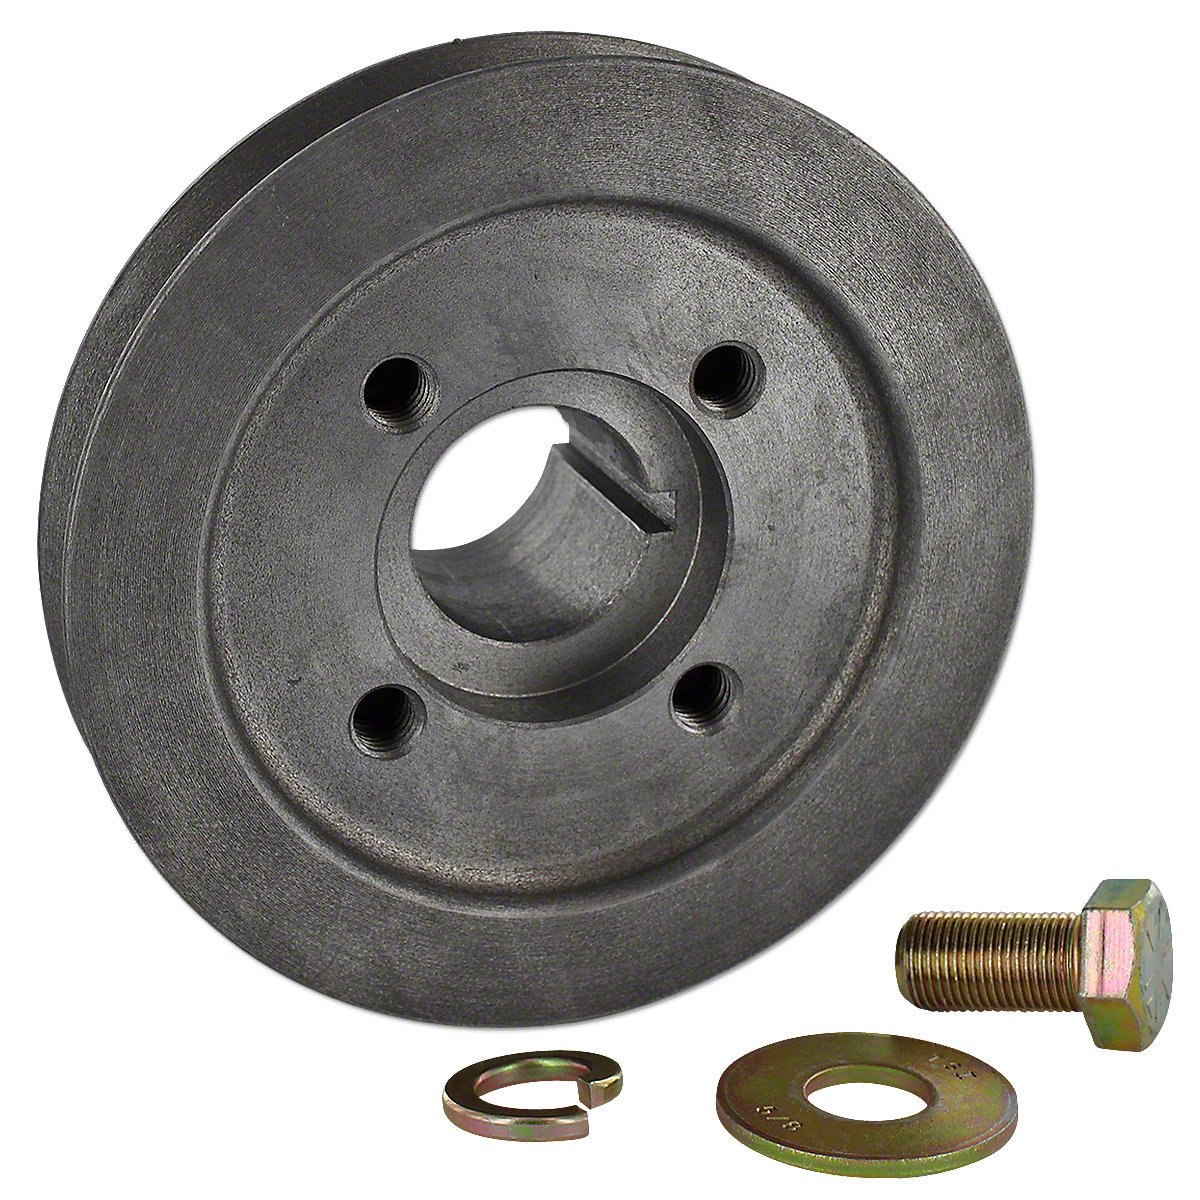 MFS112 Front Crankshaft Pulley (Ductile iron)